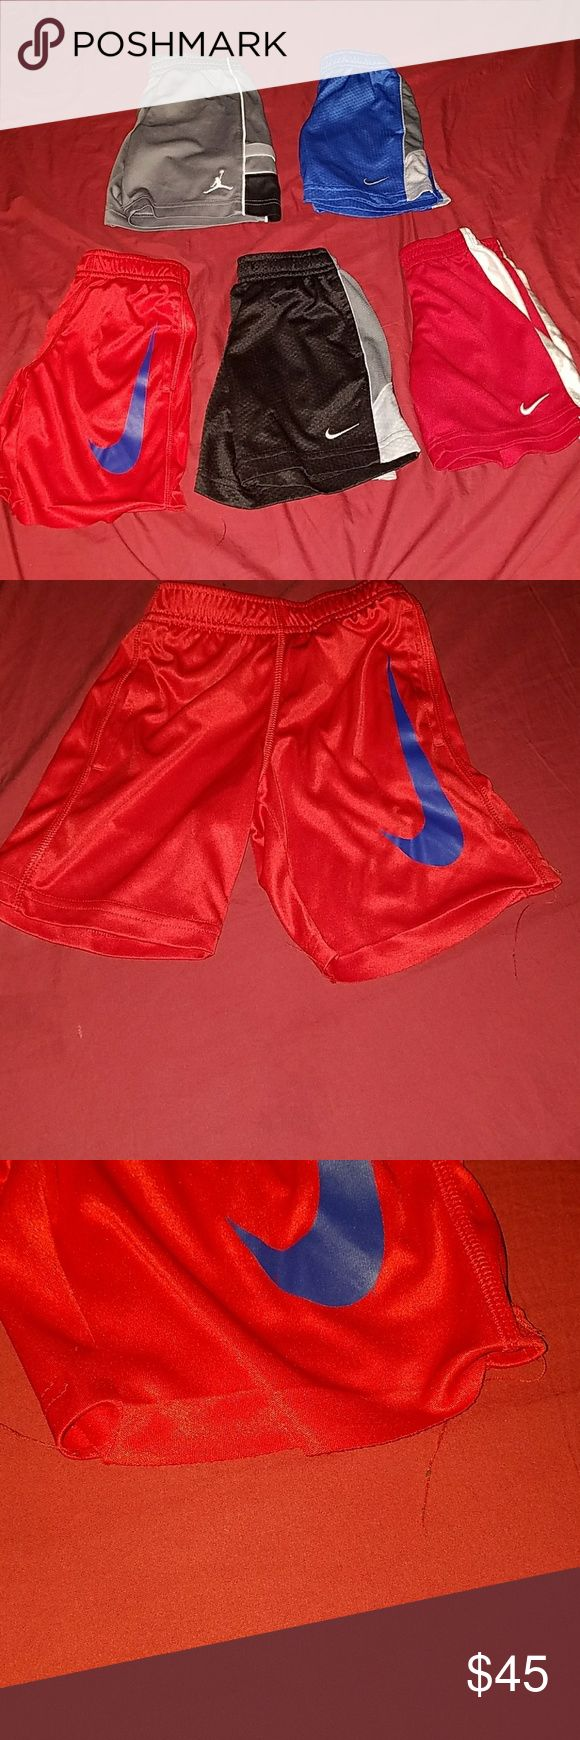 Bundle of 5 basketball style shorts 4 Nike shorts and 1 Jordan shorts. All look new except the red and blue nike shorts, the seam came apart at the end as shown in last pic. Nike Bottoms Casual